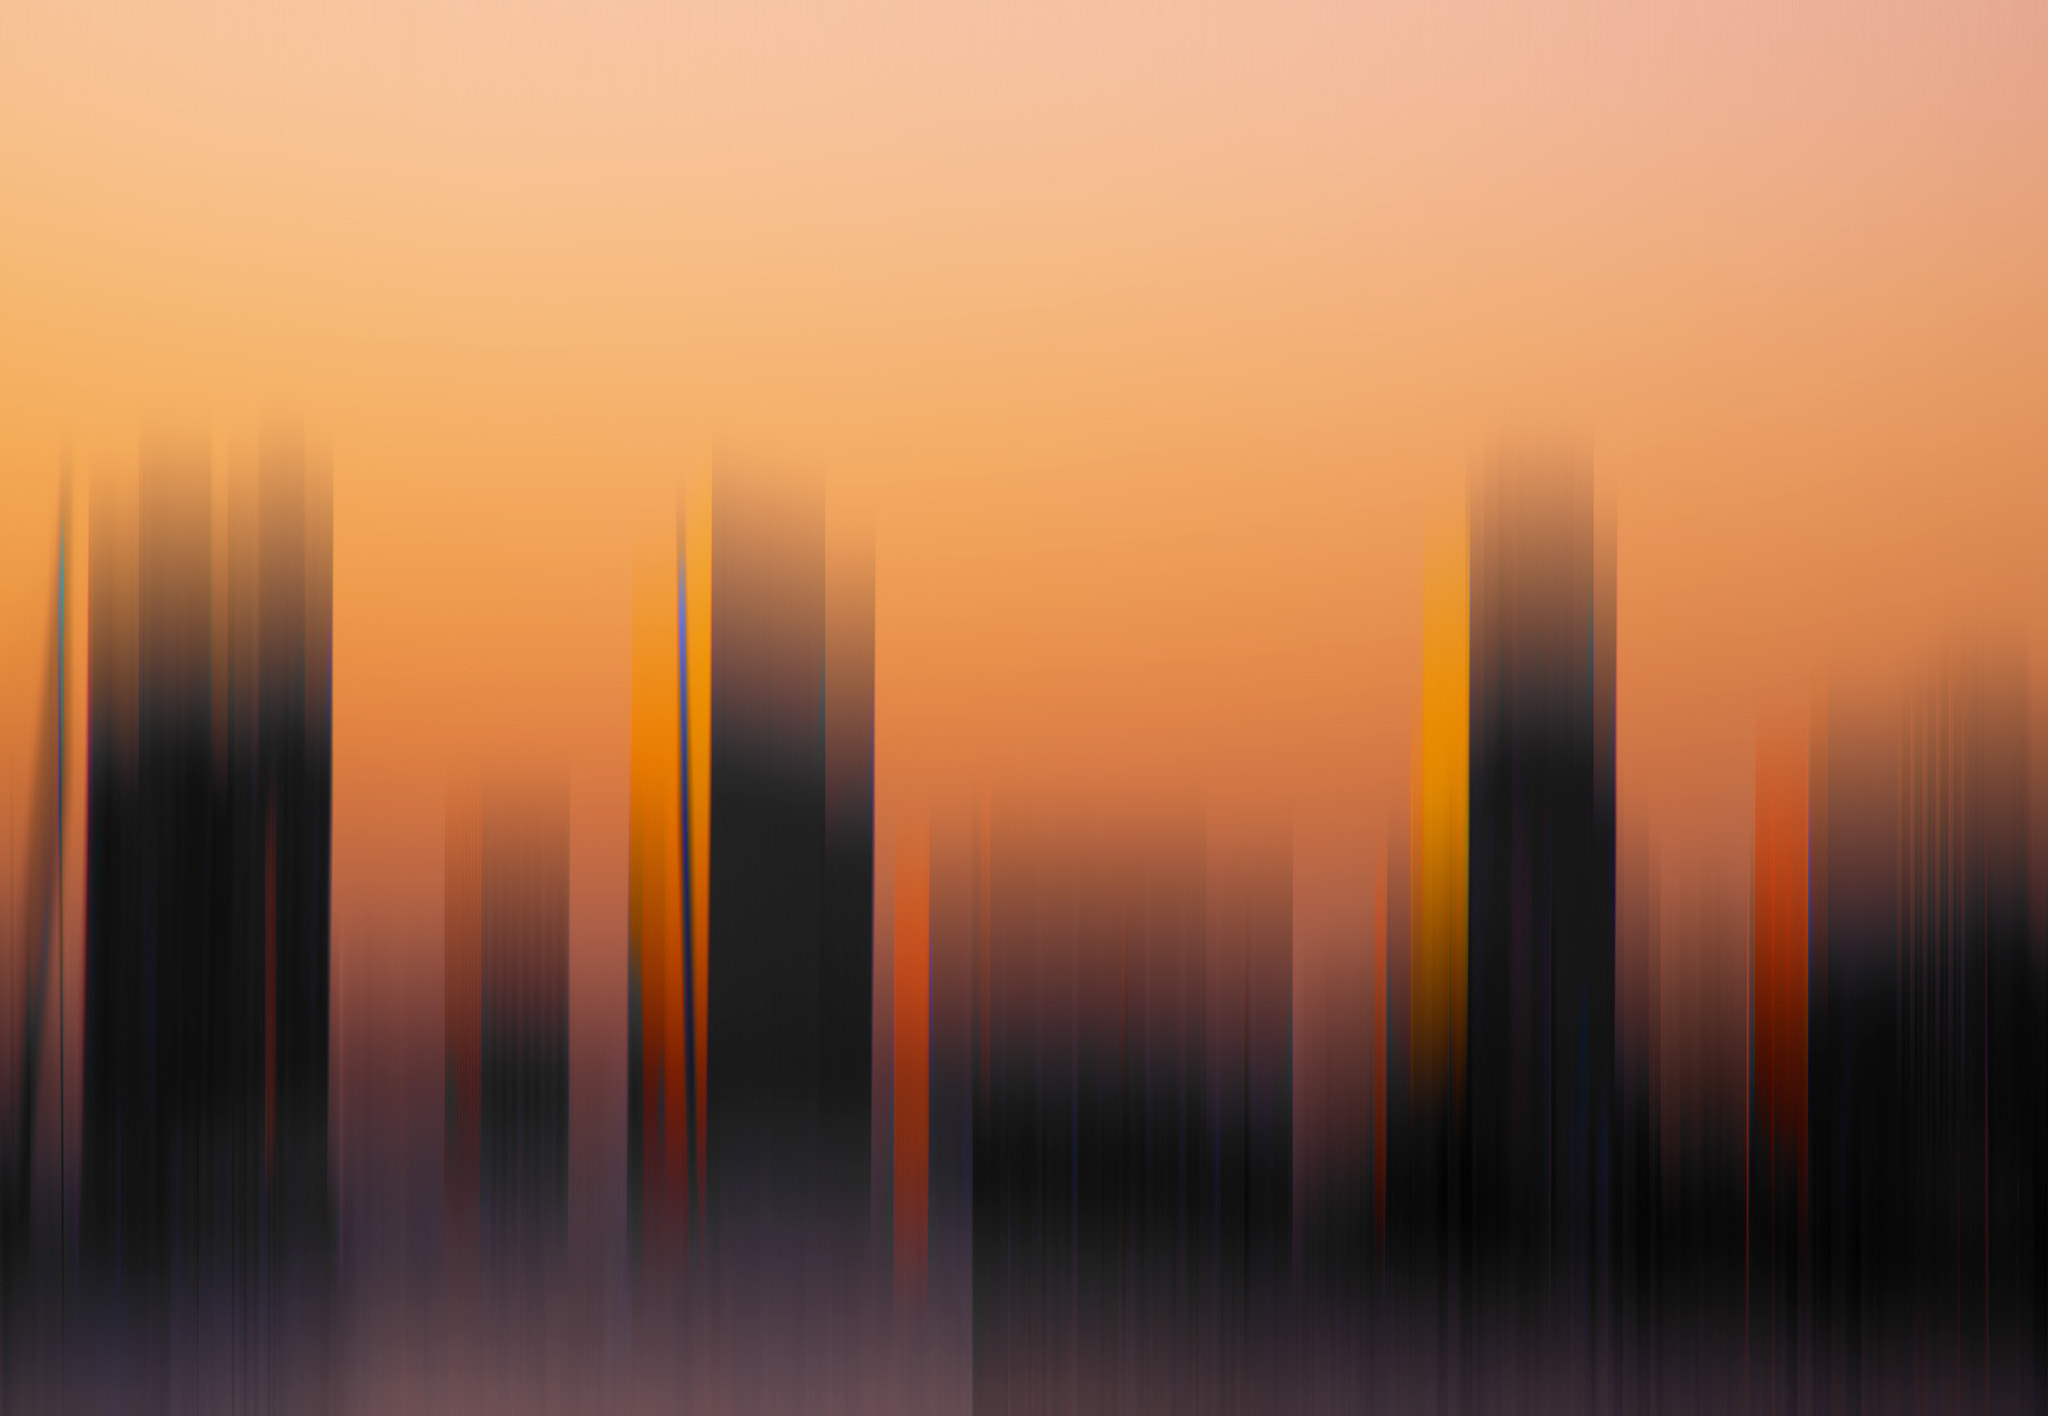 Photograph CityAtDusk by Bill Sherman on 500px